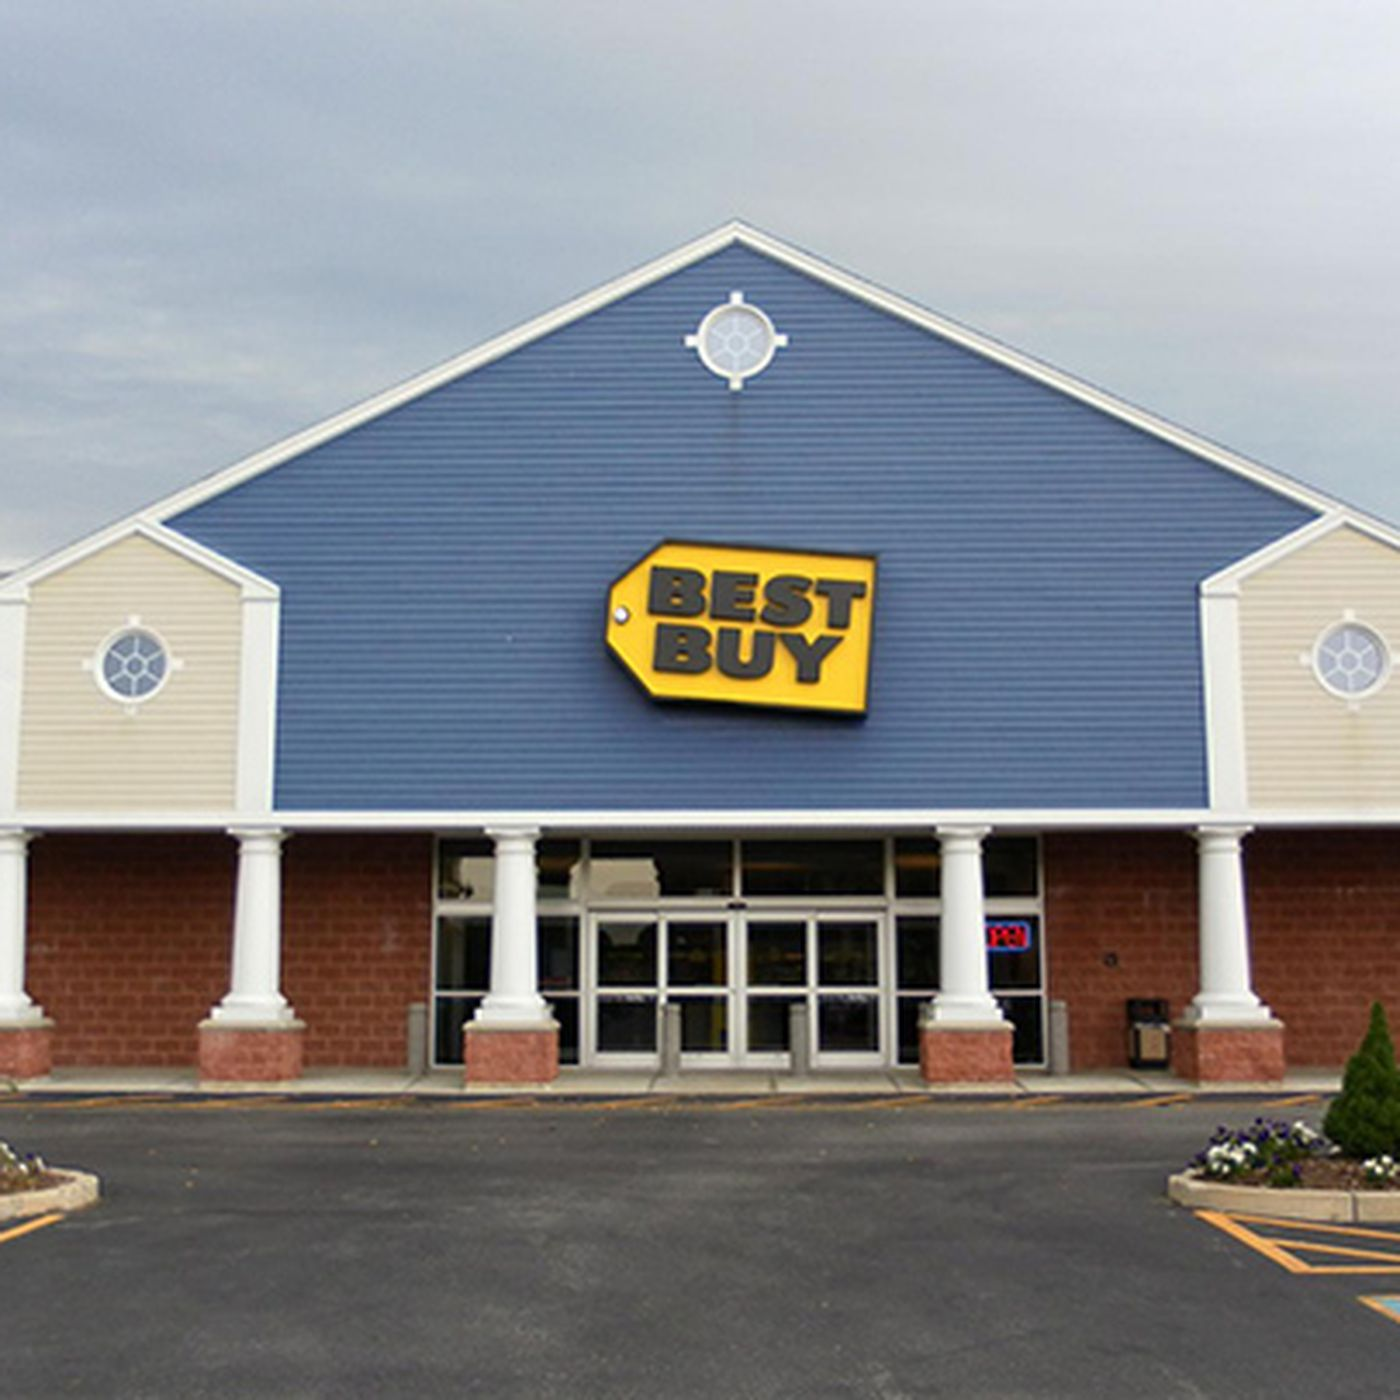 Best Buy pulls Kaspersky Lab products after concerns over ties to